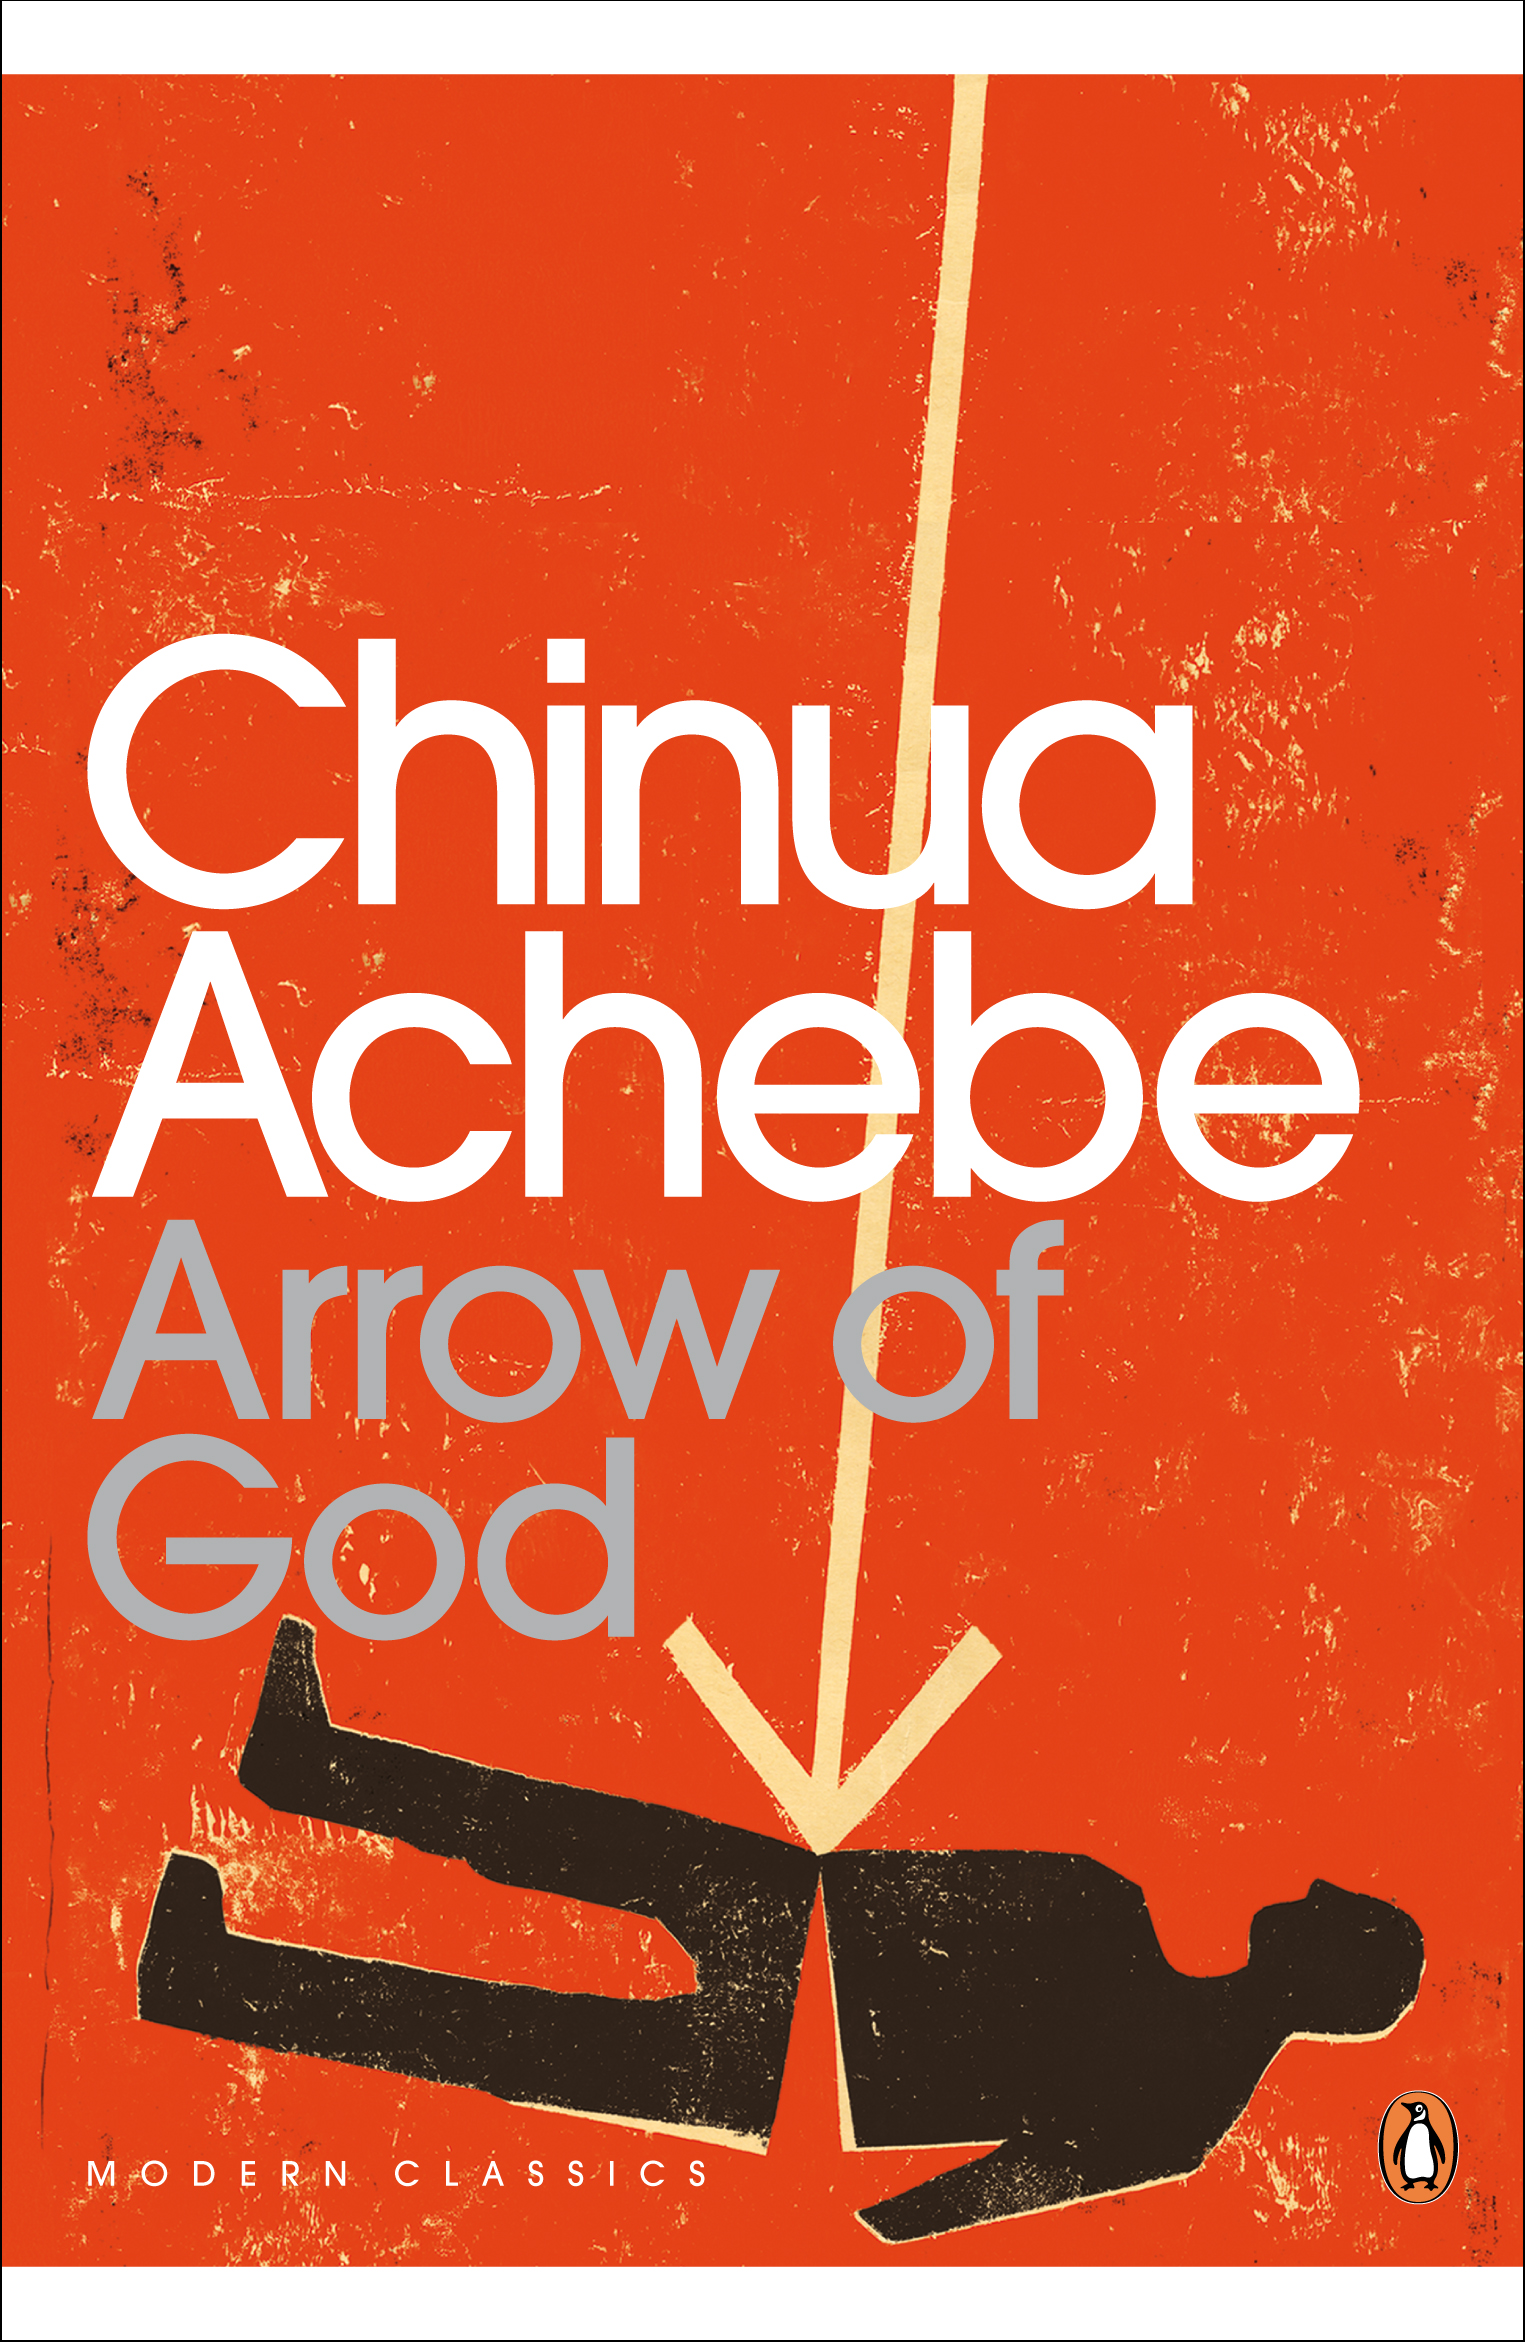 achebe finds love No longer at ease by chinua achebe, 9780141191553, available at book depository with free delivery worldwide.